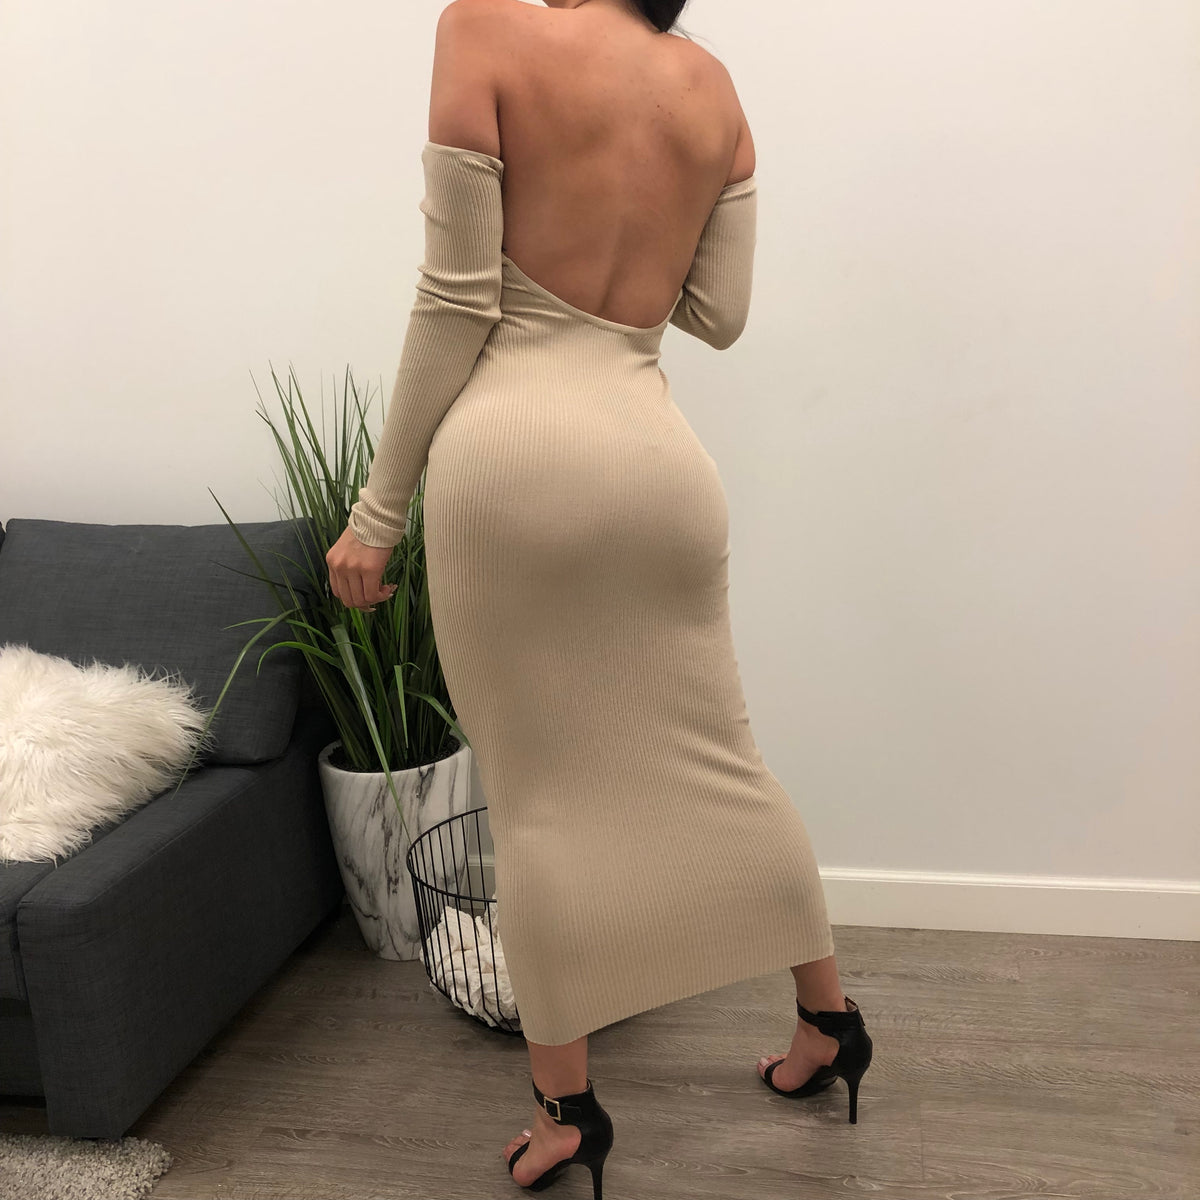 nude strapless long sleeve tight dress. low u cut back. dress length is to ankles.